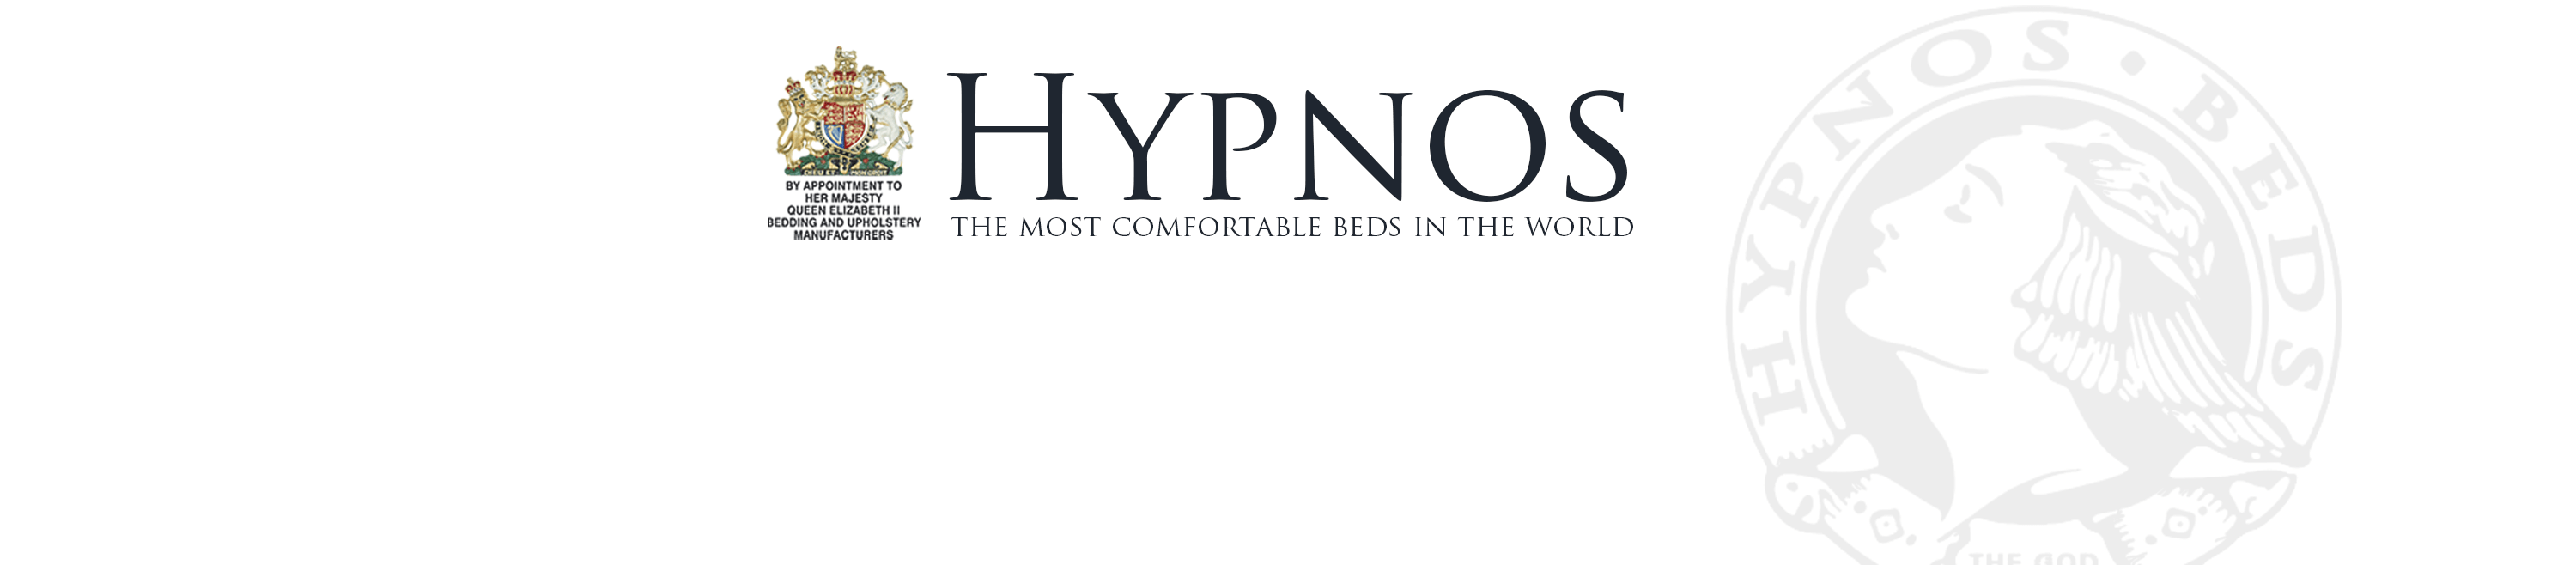 Hypnos Beds & Mattresses - Buy Online Today